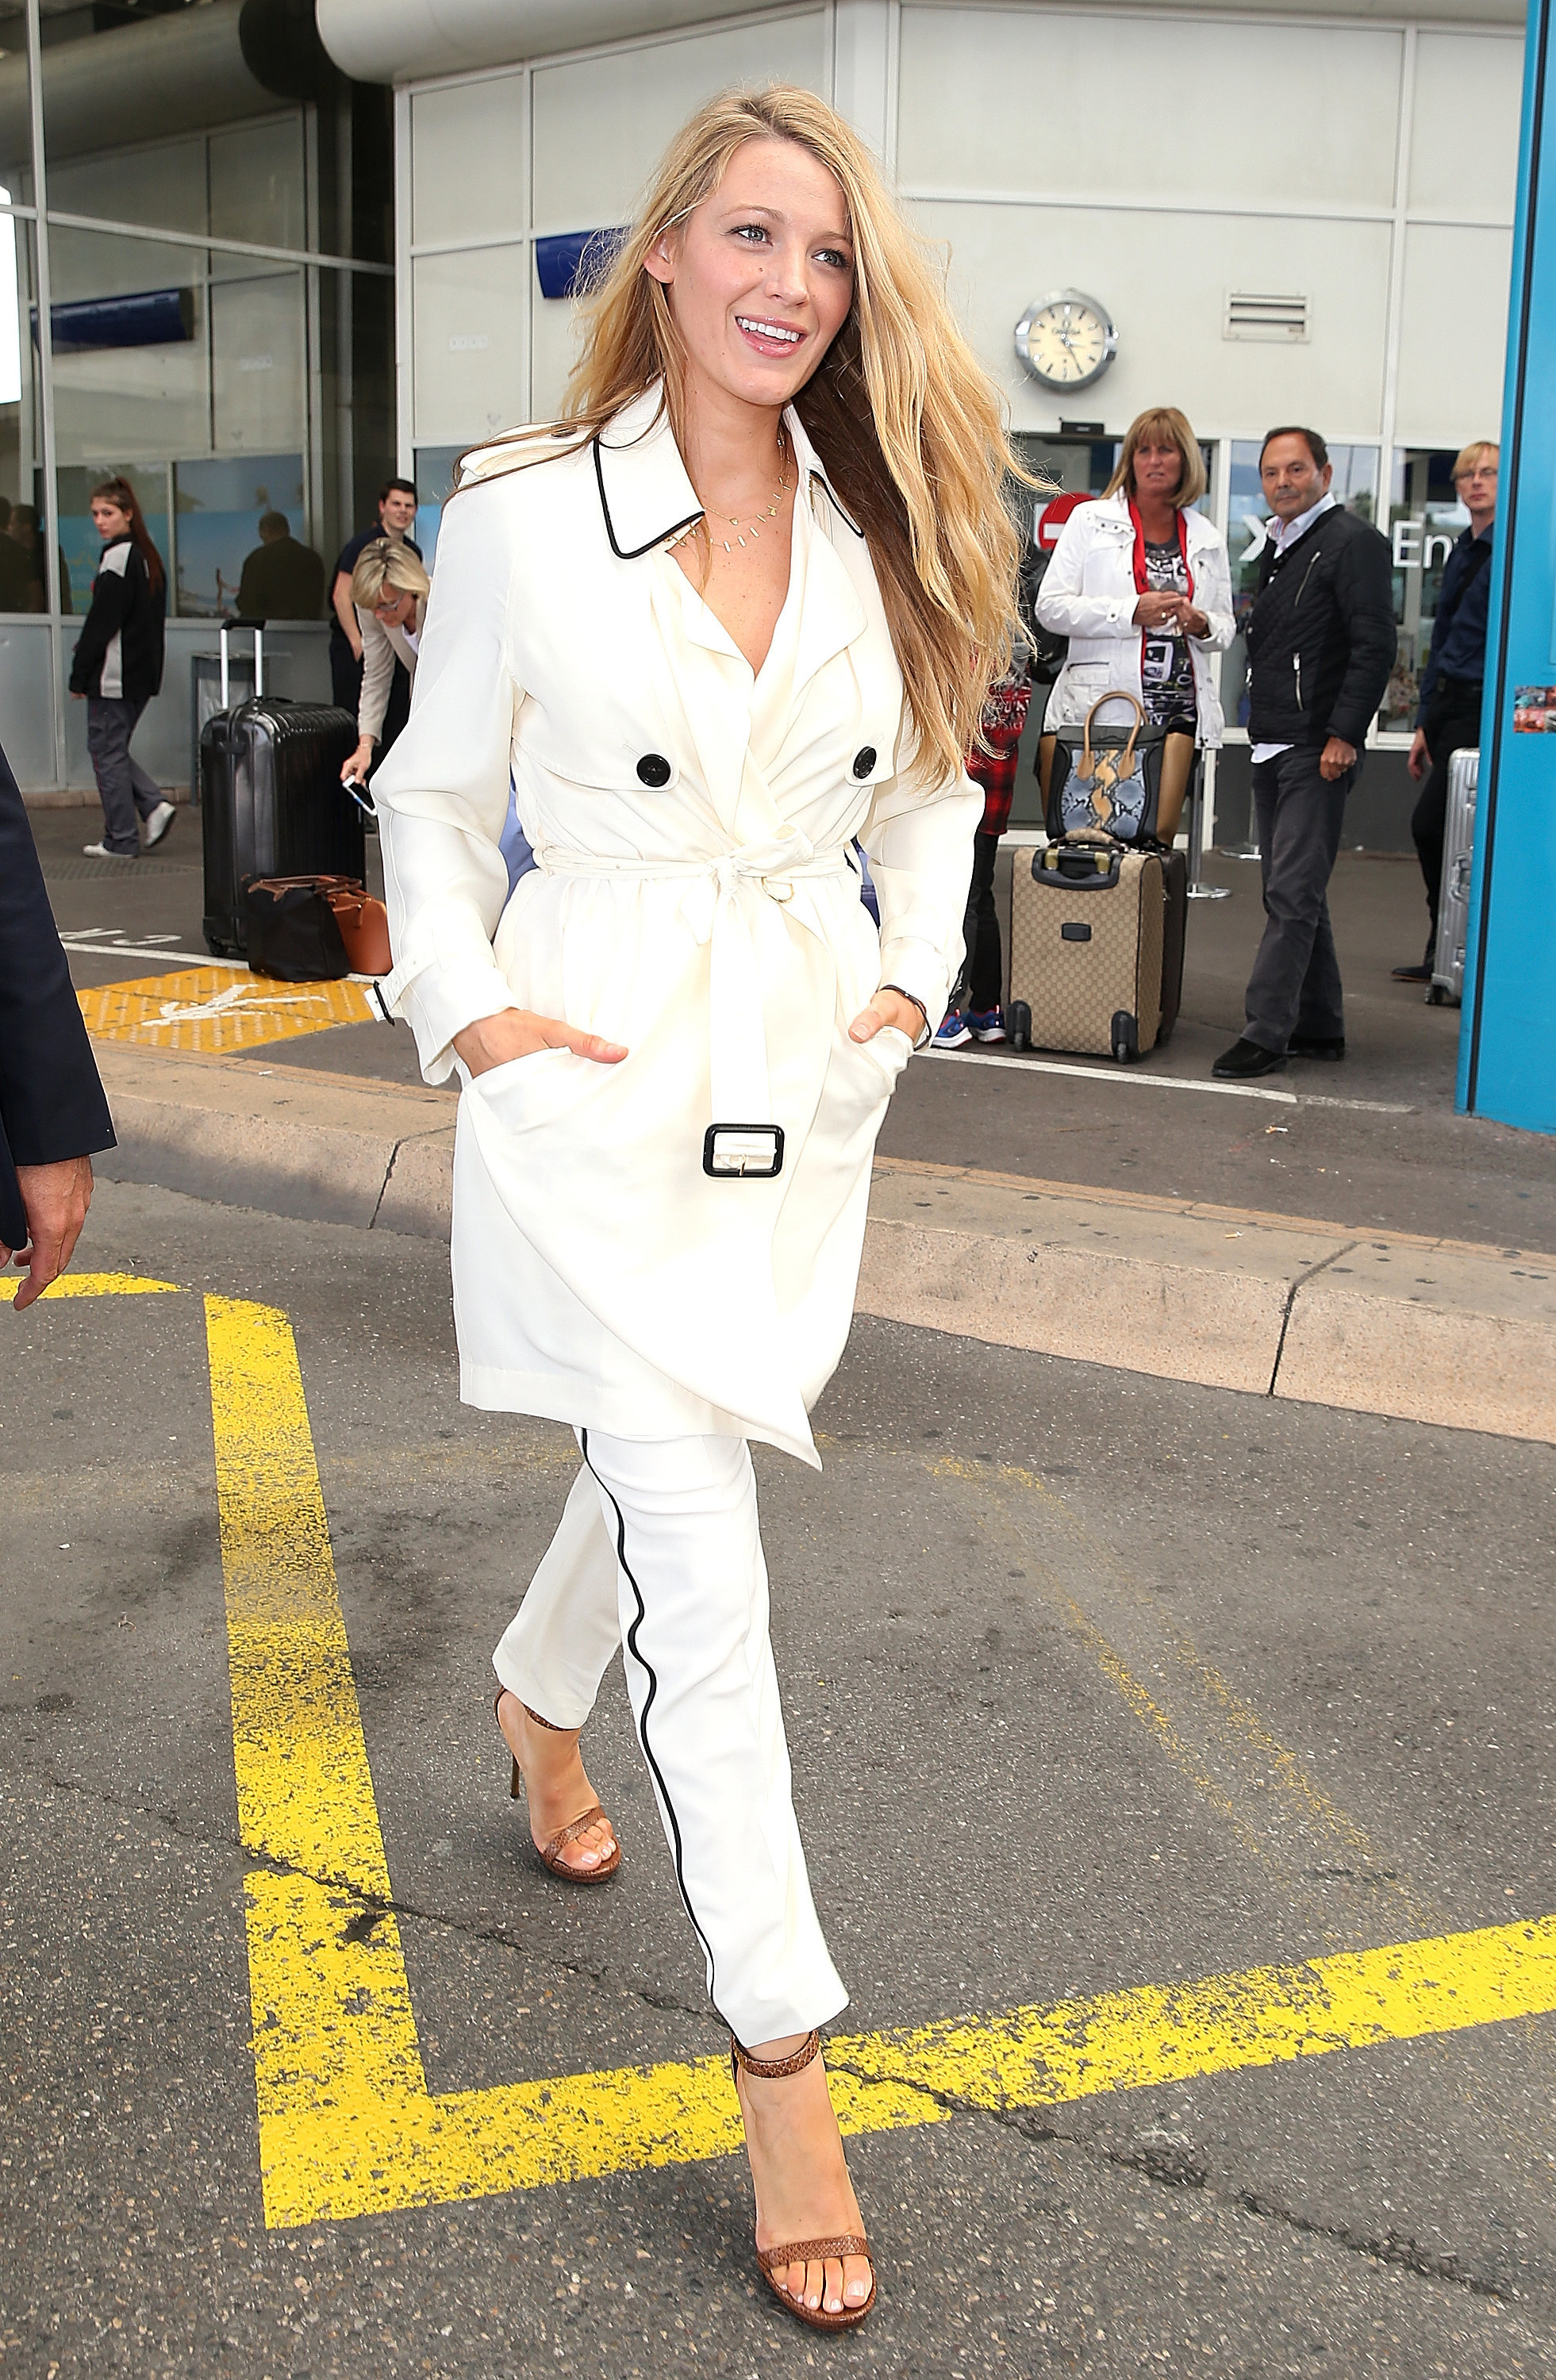 Blake-Lively-All-White-Arriving-Cannes-2016-1